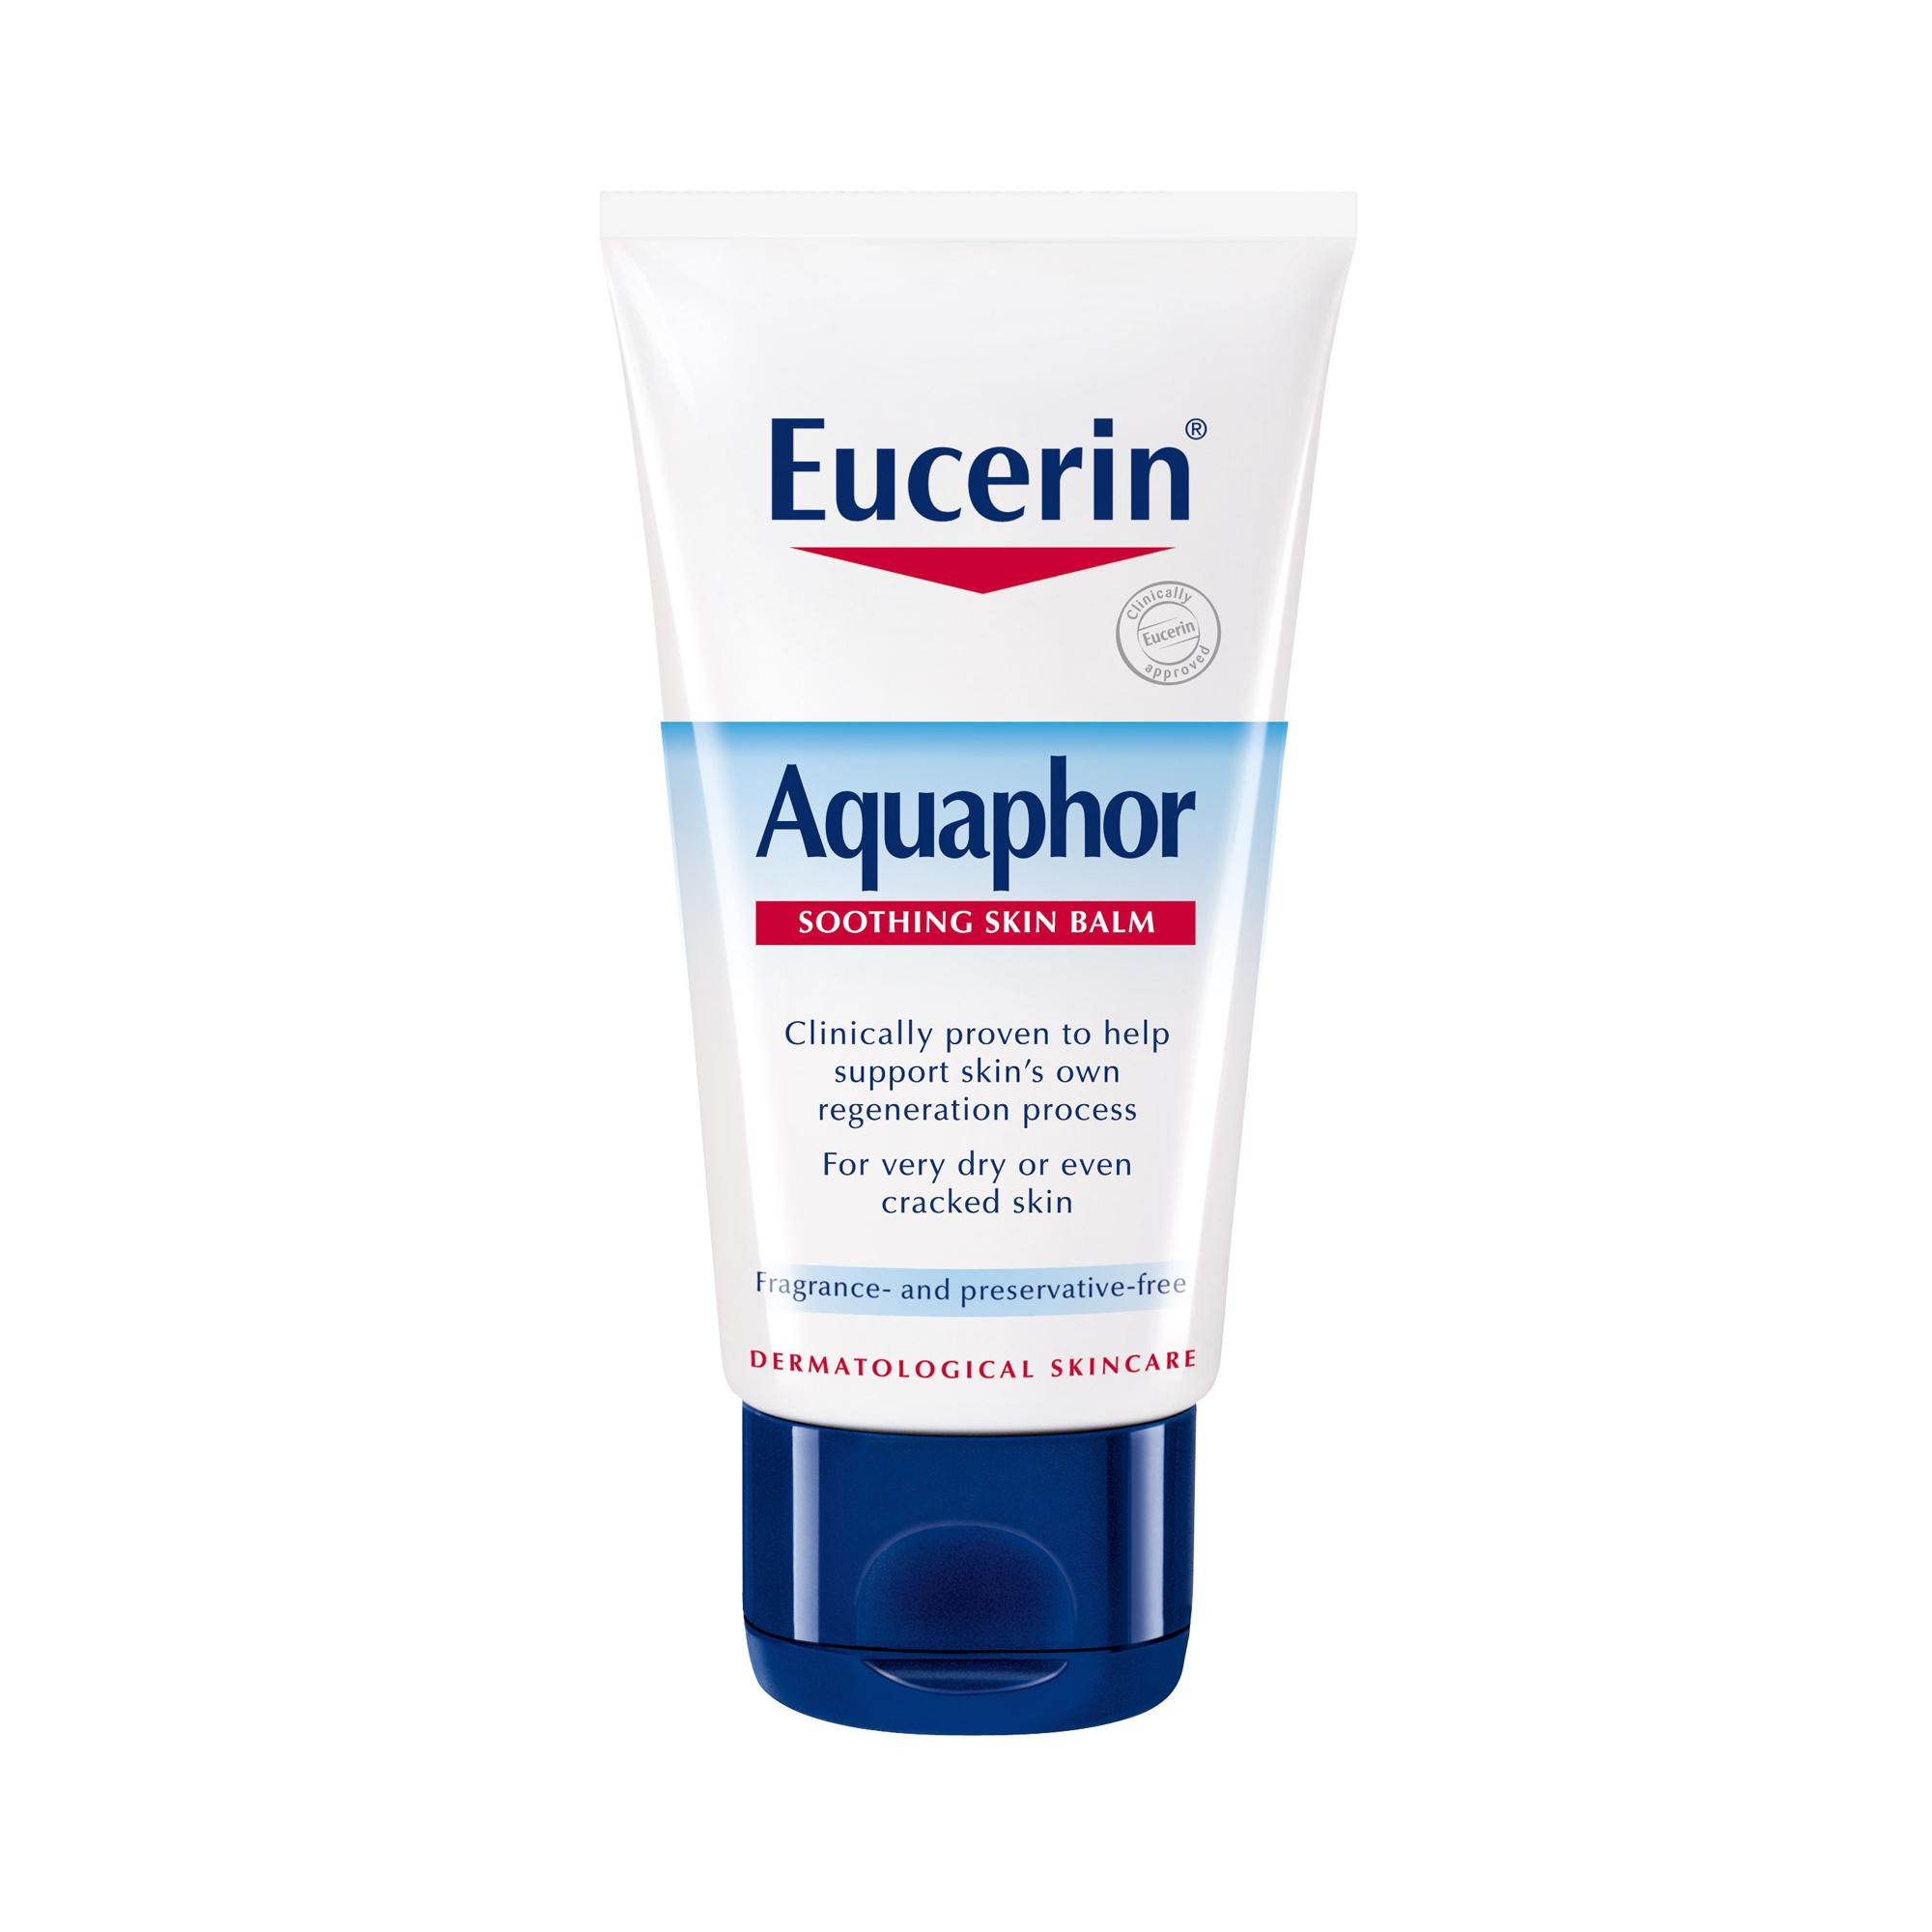 Eucerin Aquaphor Soothe And Strengthen Skin Balm Cancer Research